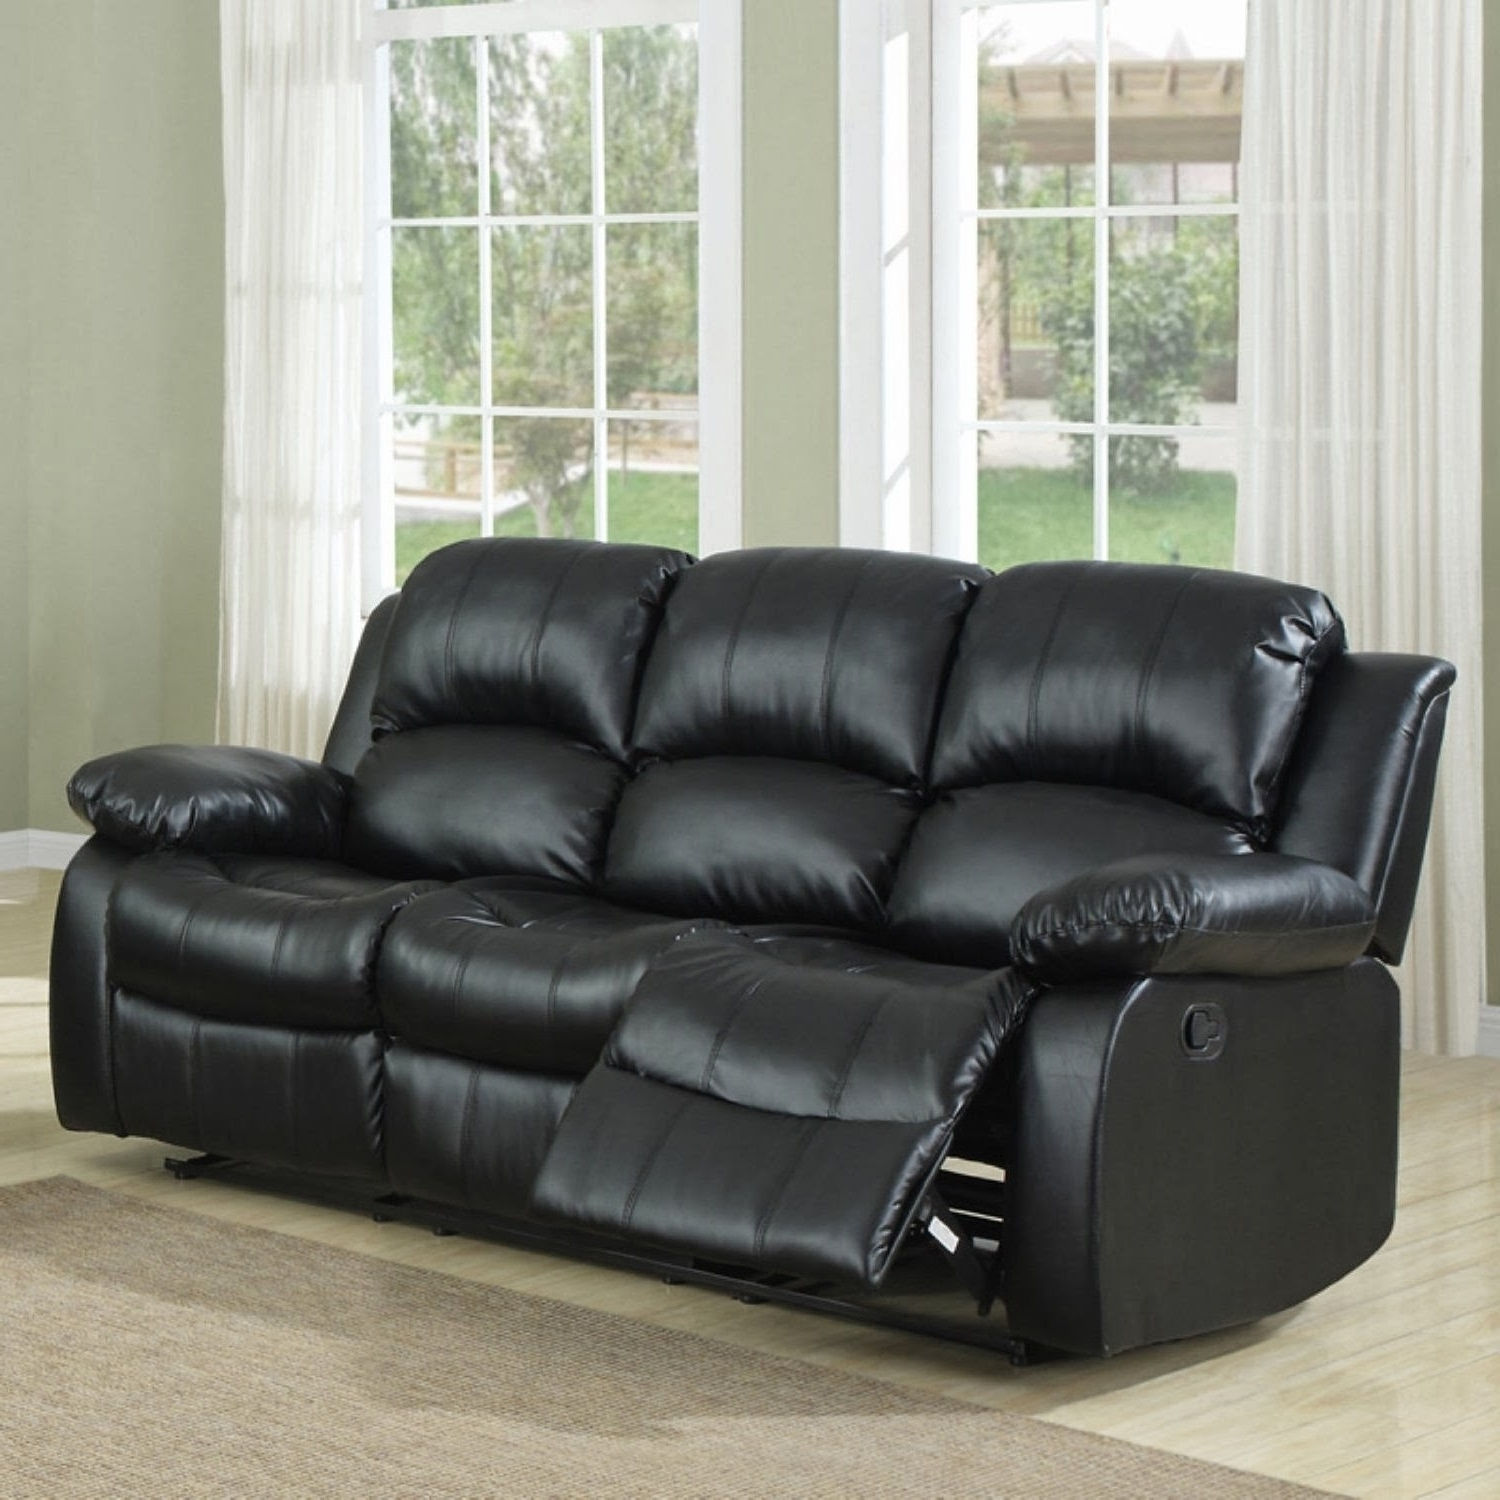 Rochester Ny Sectional Sofas Within Well Known Collection Sectional Sofas Rochester Ny – Mediasupload (View 9 of 15)